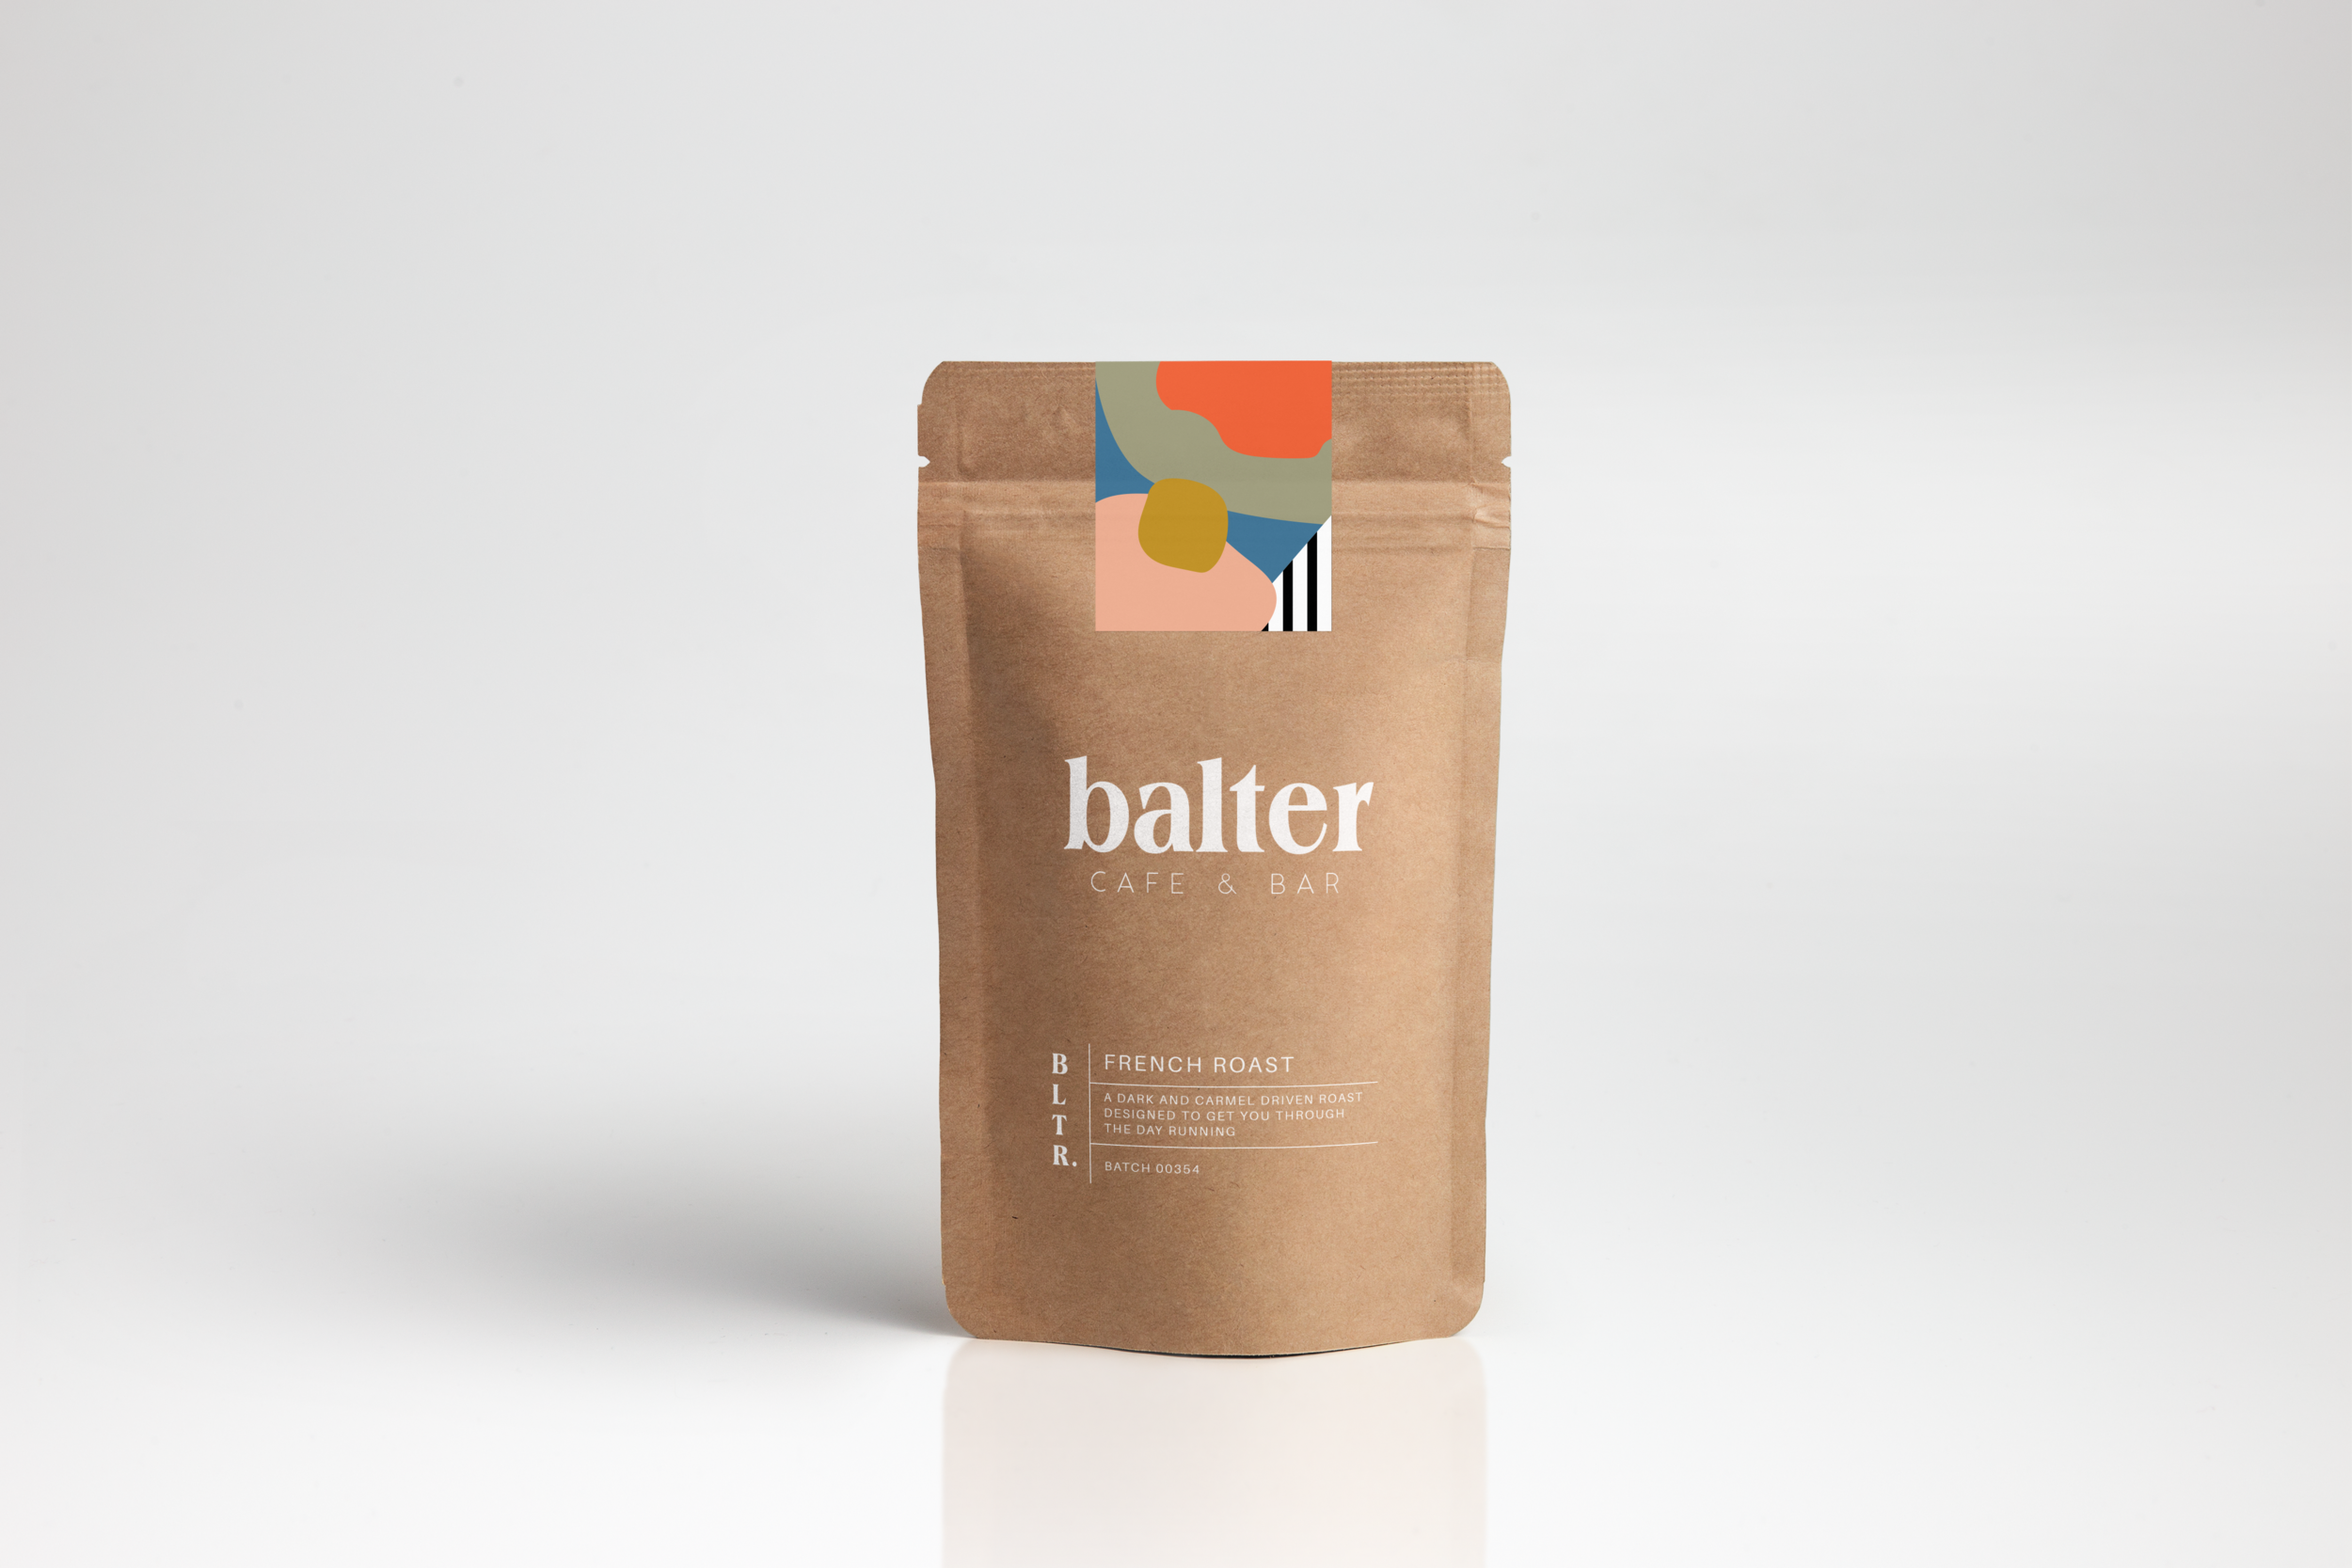 BALTER LOGO DESIGN